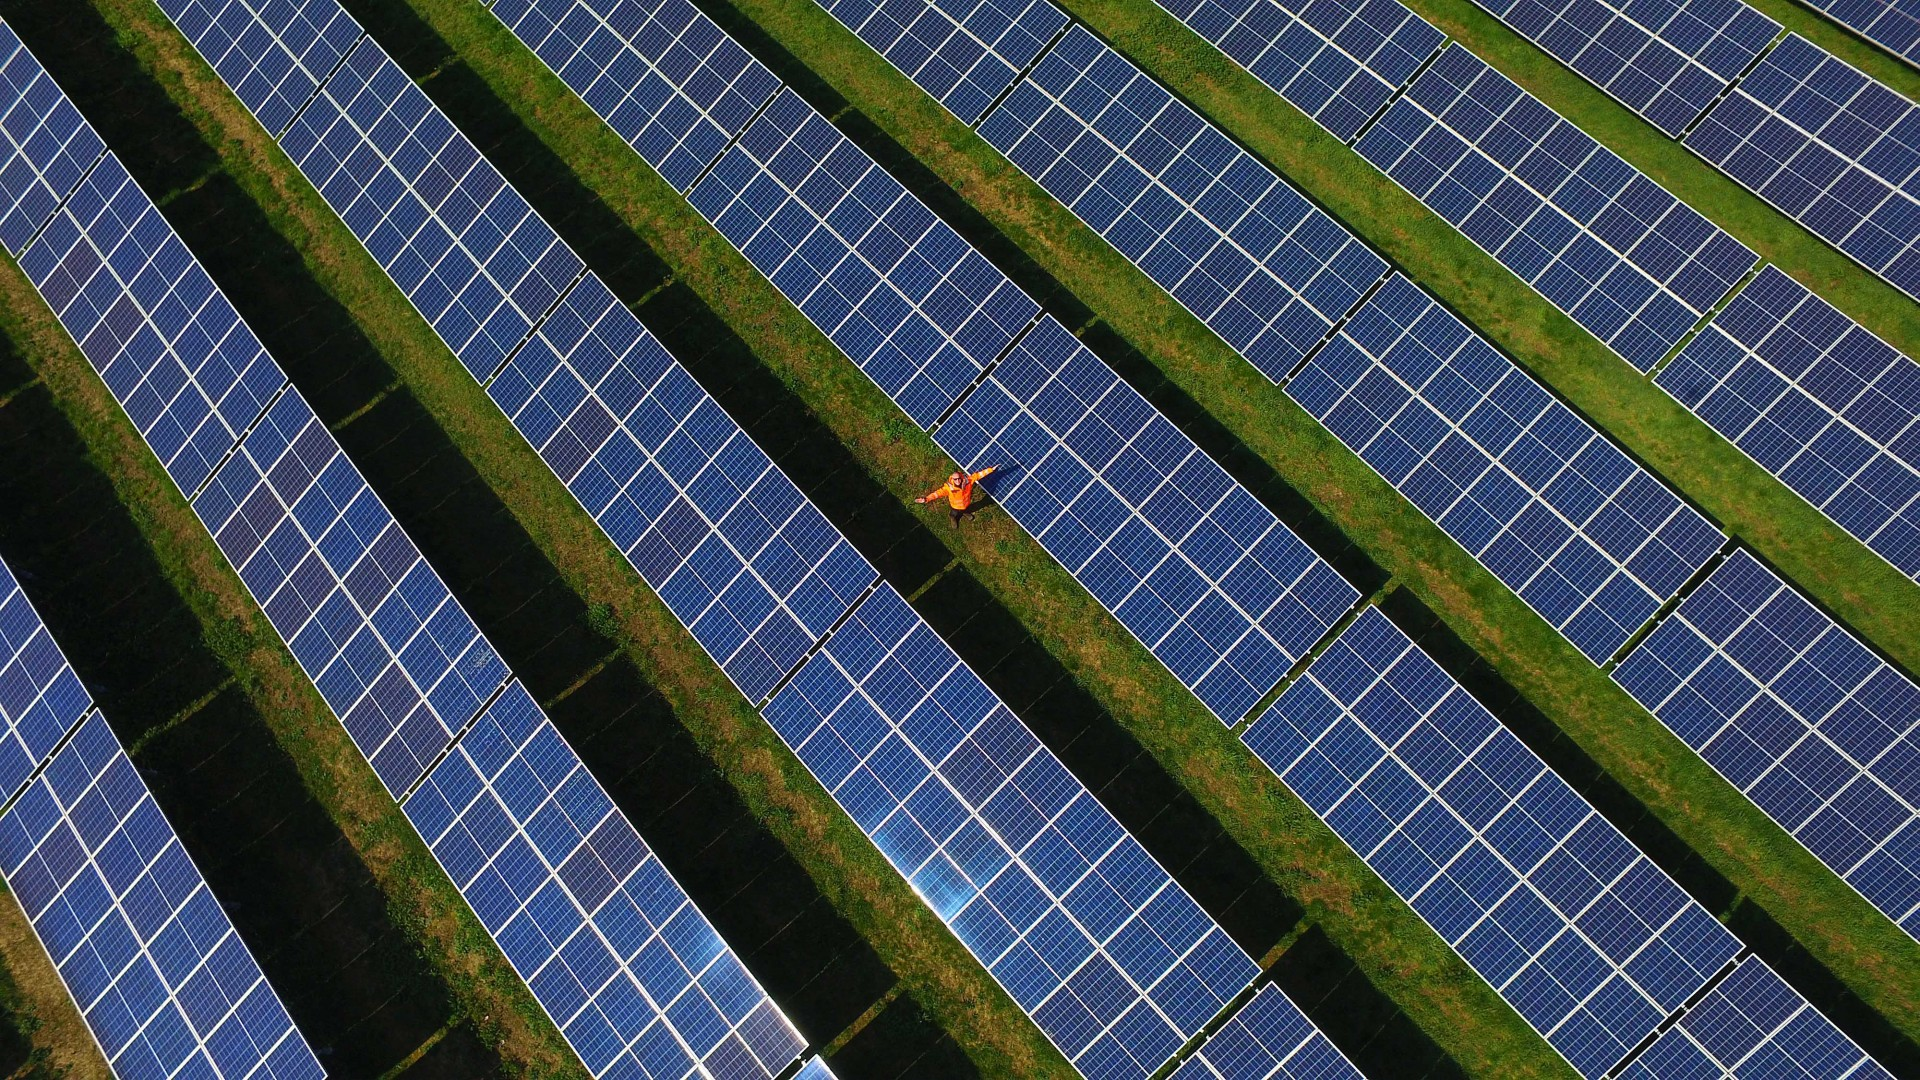 The reality of subsidy-free solar brings fresh challenges as well as opportunities for developers. Image: Solarcentury